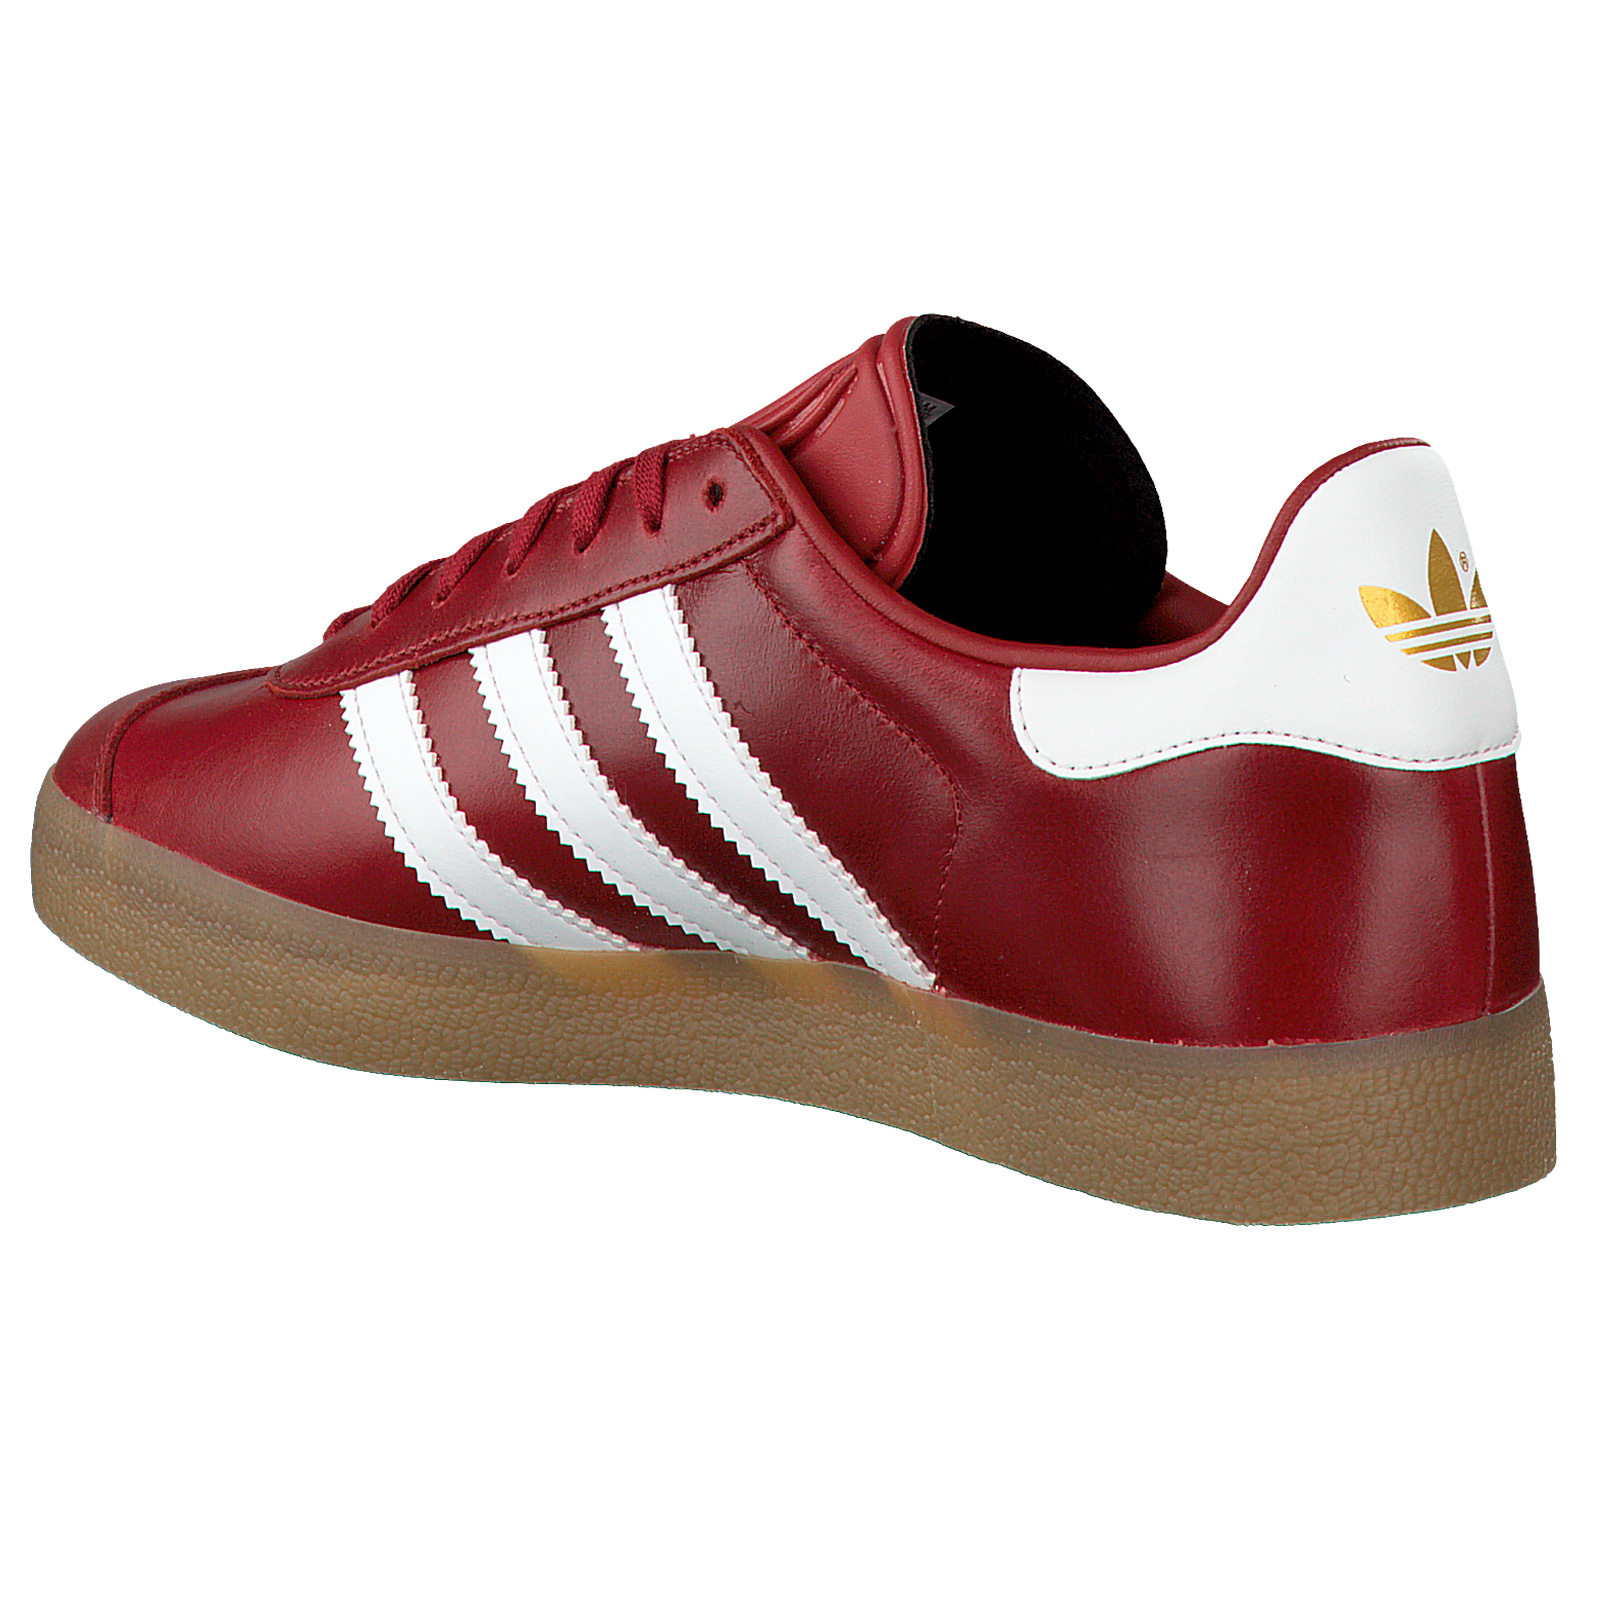 Details about Adidas Retro Gazelle Ladies Mystic Red Leather Sneakers Casual Shoes Wine